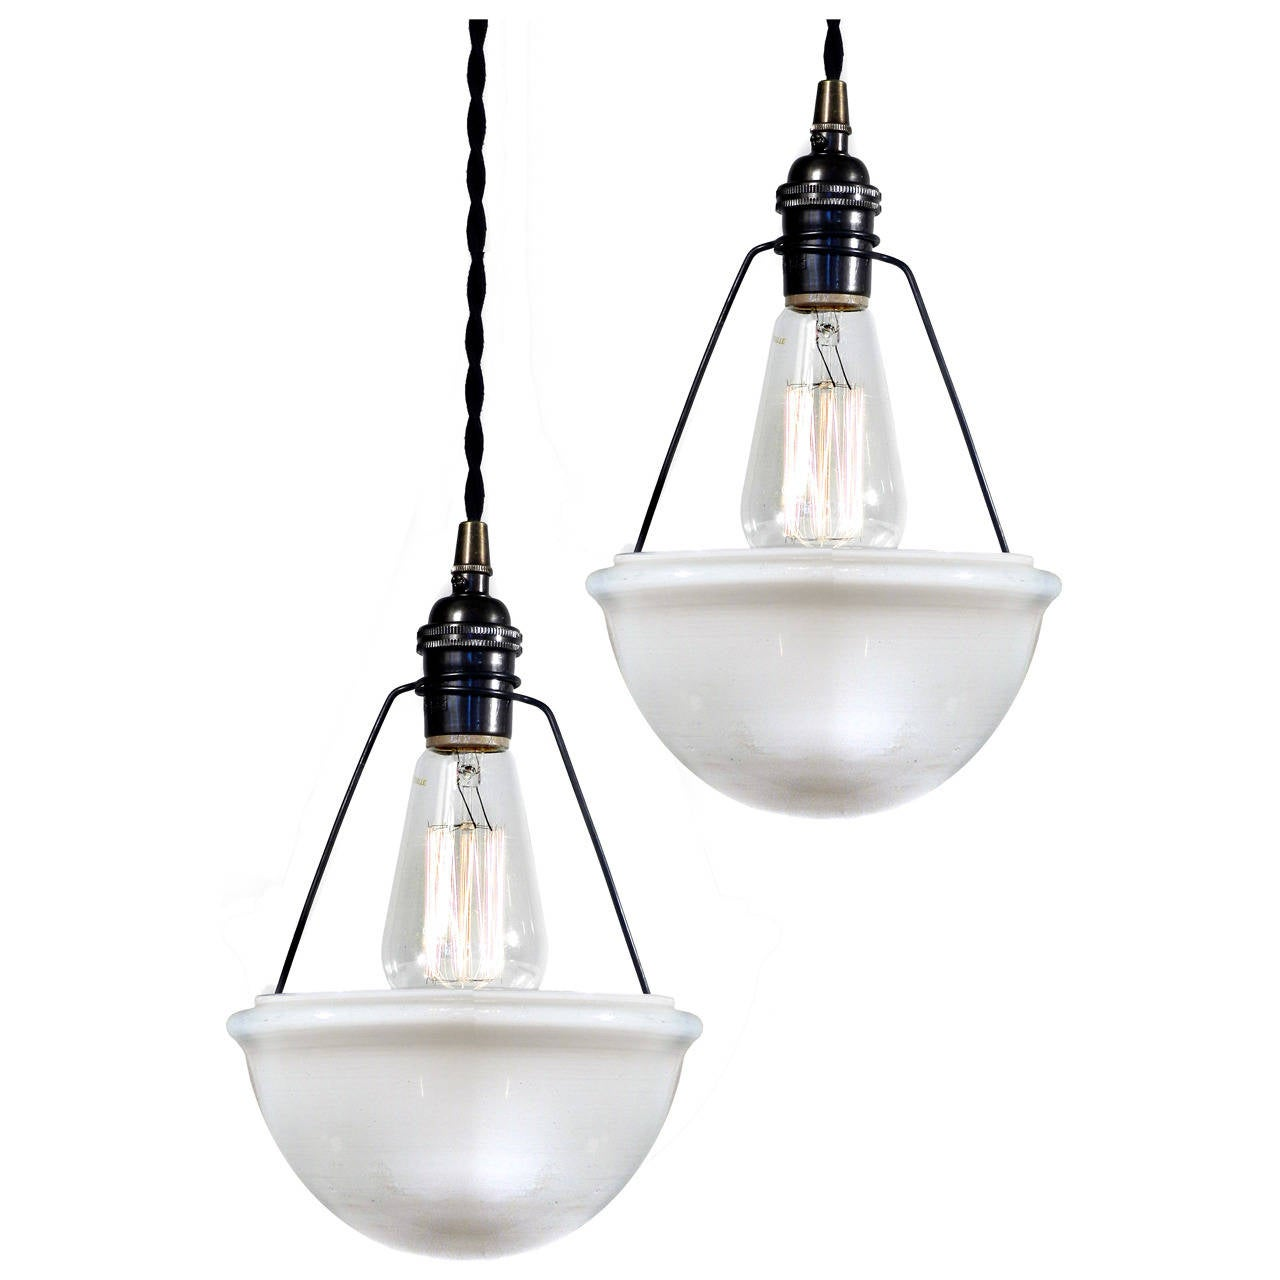 Mini Milk Glass Pendants For Sale At 1stdibs. Ash Flooring. Tiki Torches. Drought Tolerant Shrubs. What Color Curtains Go With Gray Walls. Screened Porch. Shutters At Lowes. Swing Arm Wall Sconce Hardwired. Things To Consider When Buying A House